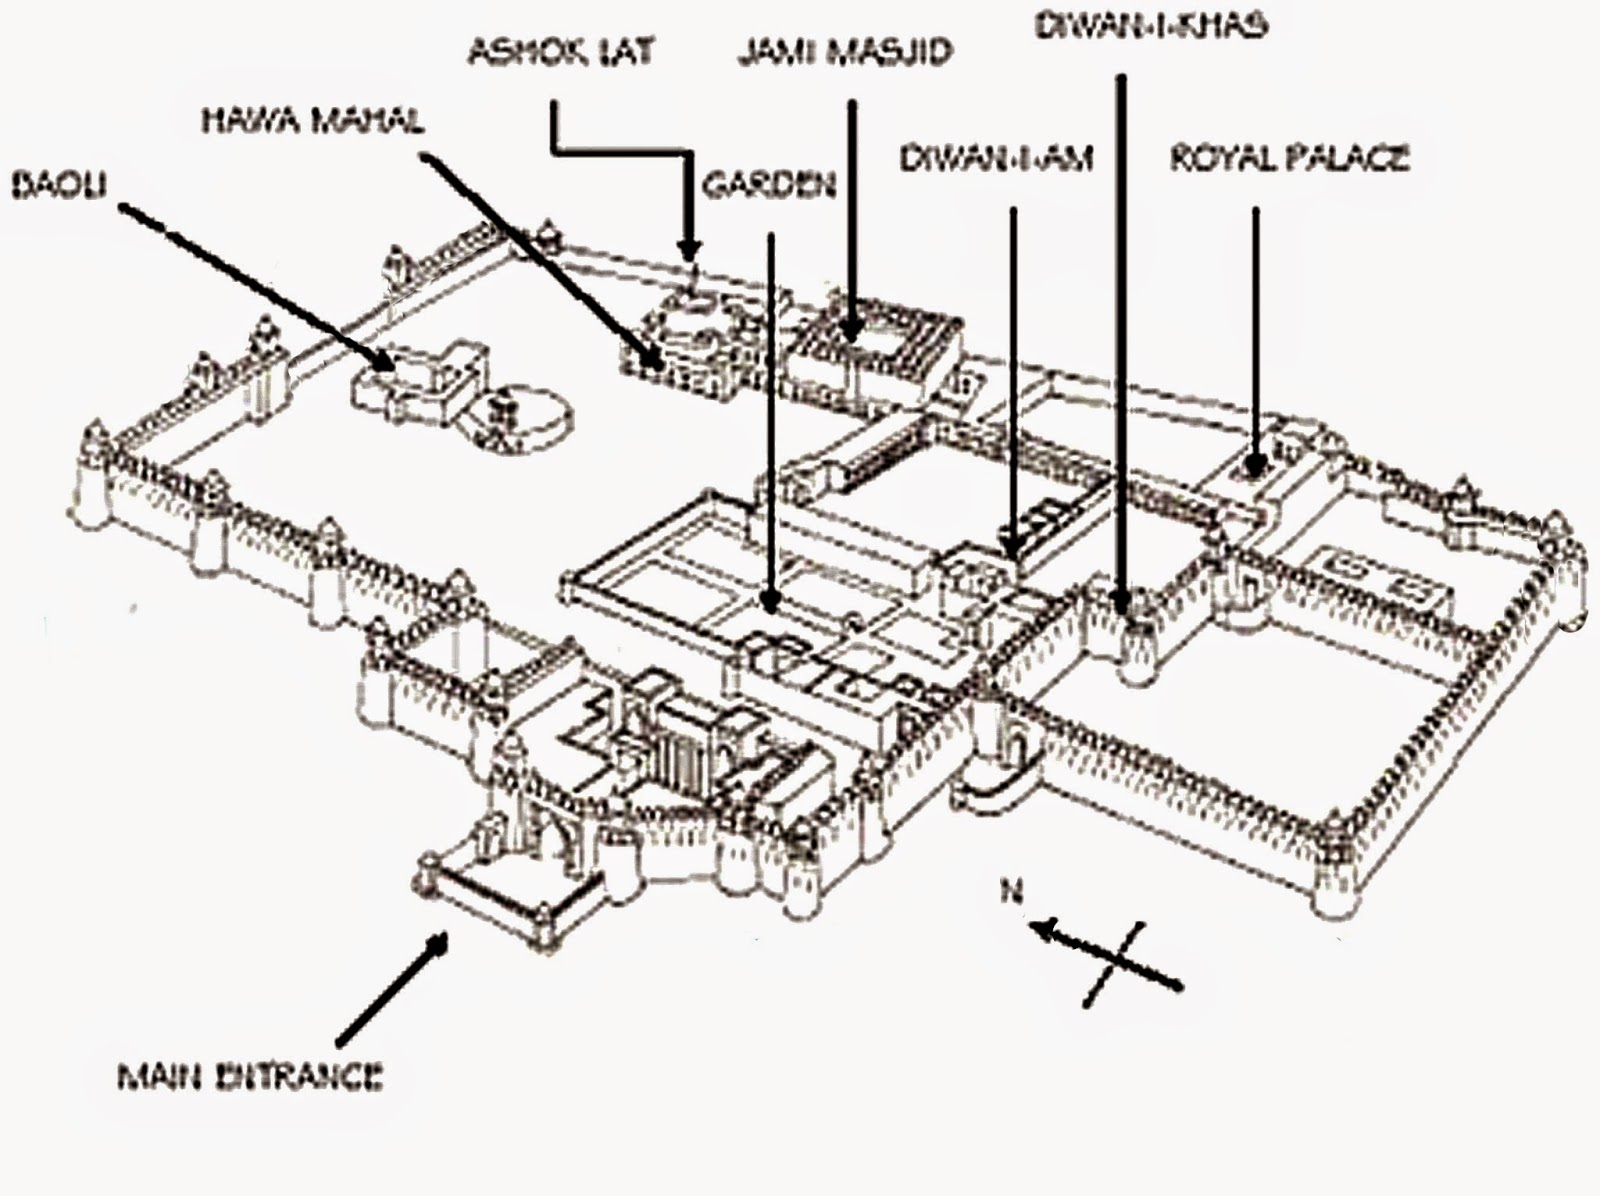 Plan of Feroz Shah Kotla or Ferozabad (Source: www.pixels-memories.blogspot.in)